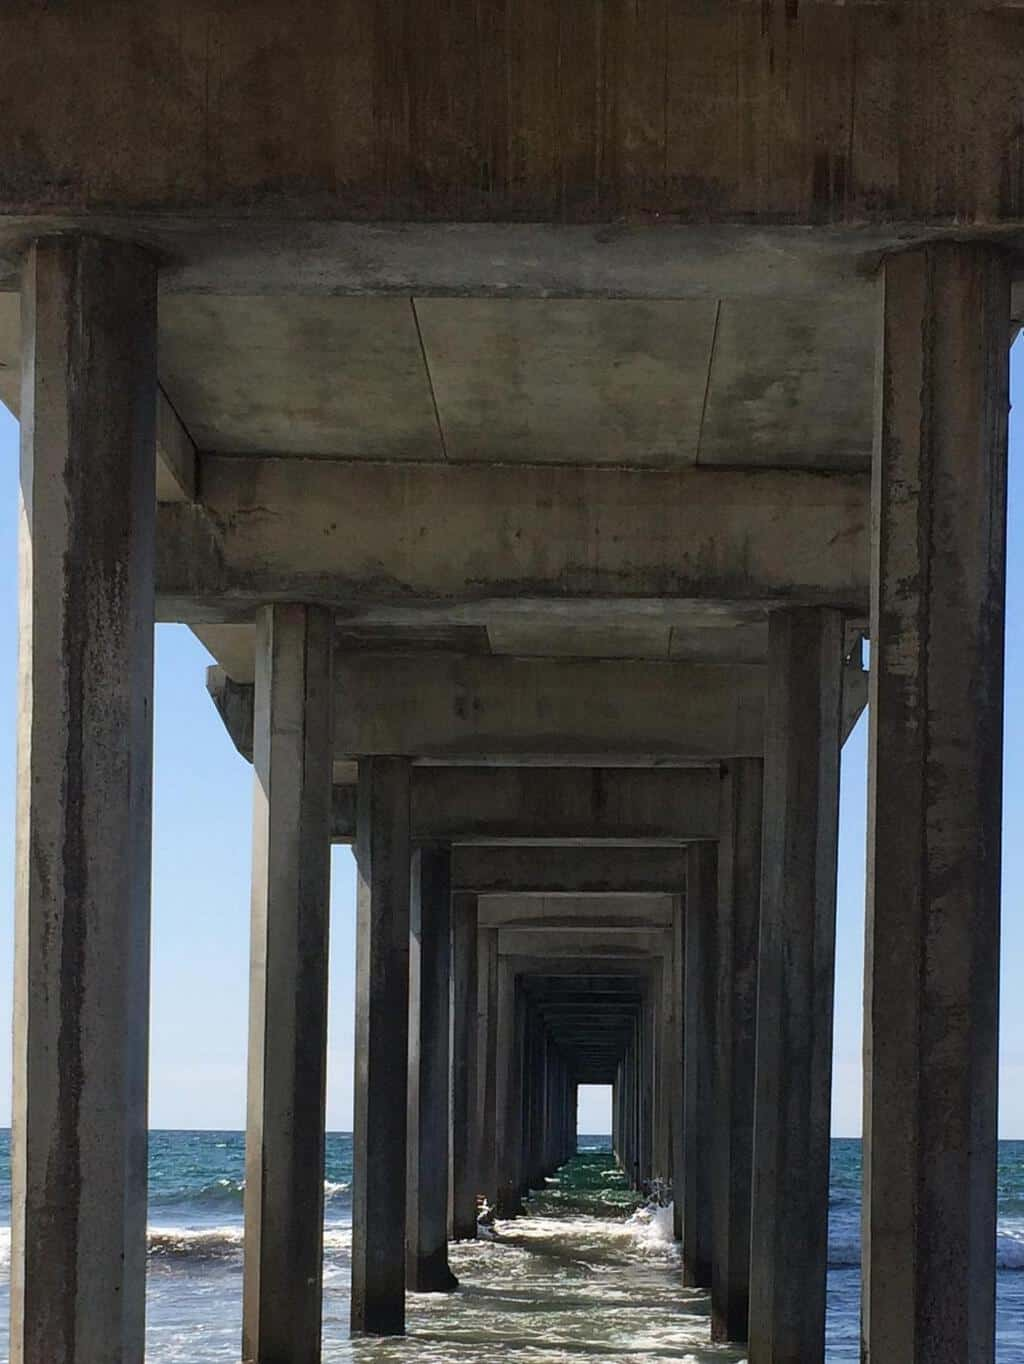 under the pier in La Jolla shot of rows of concrete leading into the water